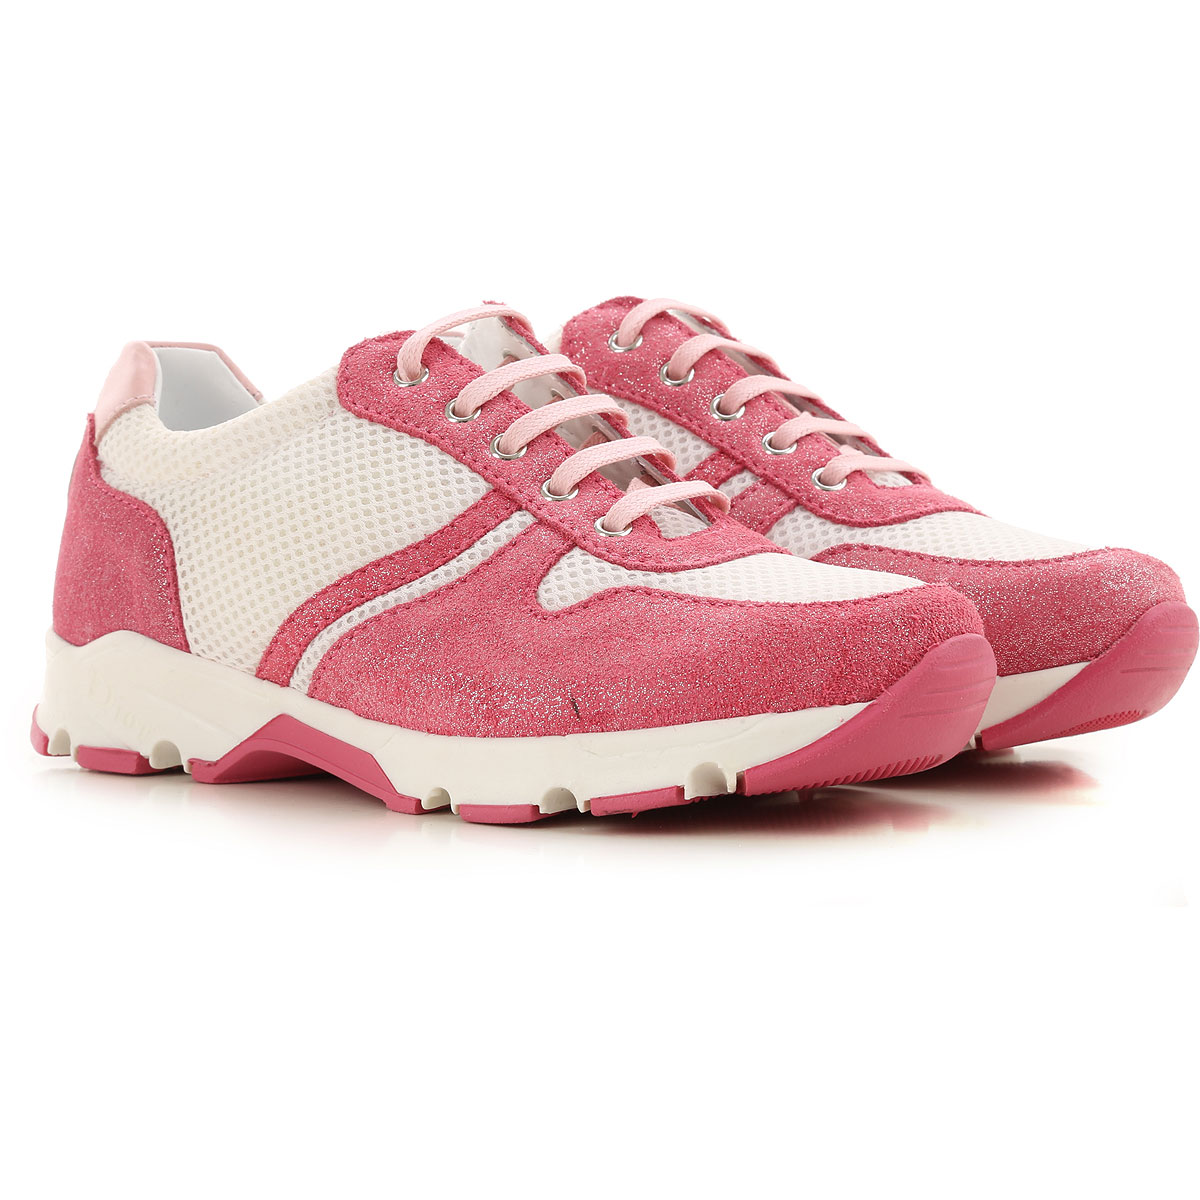 Christian Dior Kids Shoes for Girls On Sale in Outlet, Pink, Fabric, 2019, 29 30 31 32 33 34 35